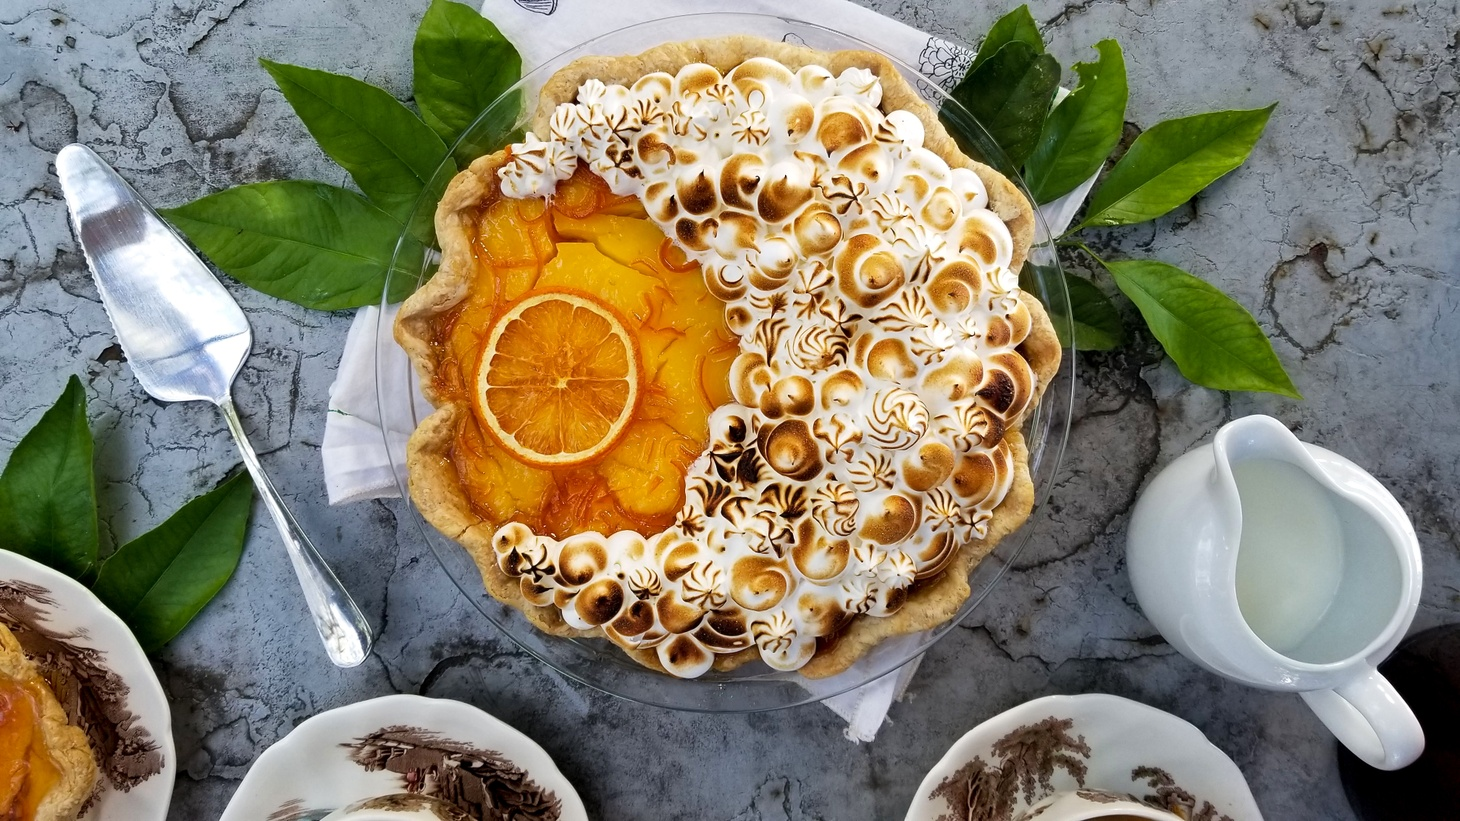 Christina Wong's Seville Orange Marmalade Pie won the Prettiest Pie category this year.